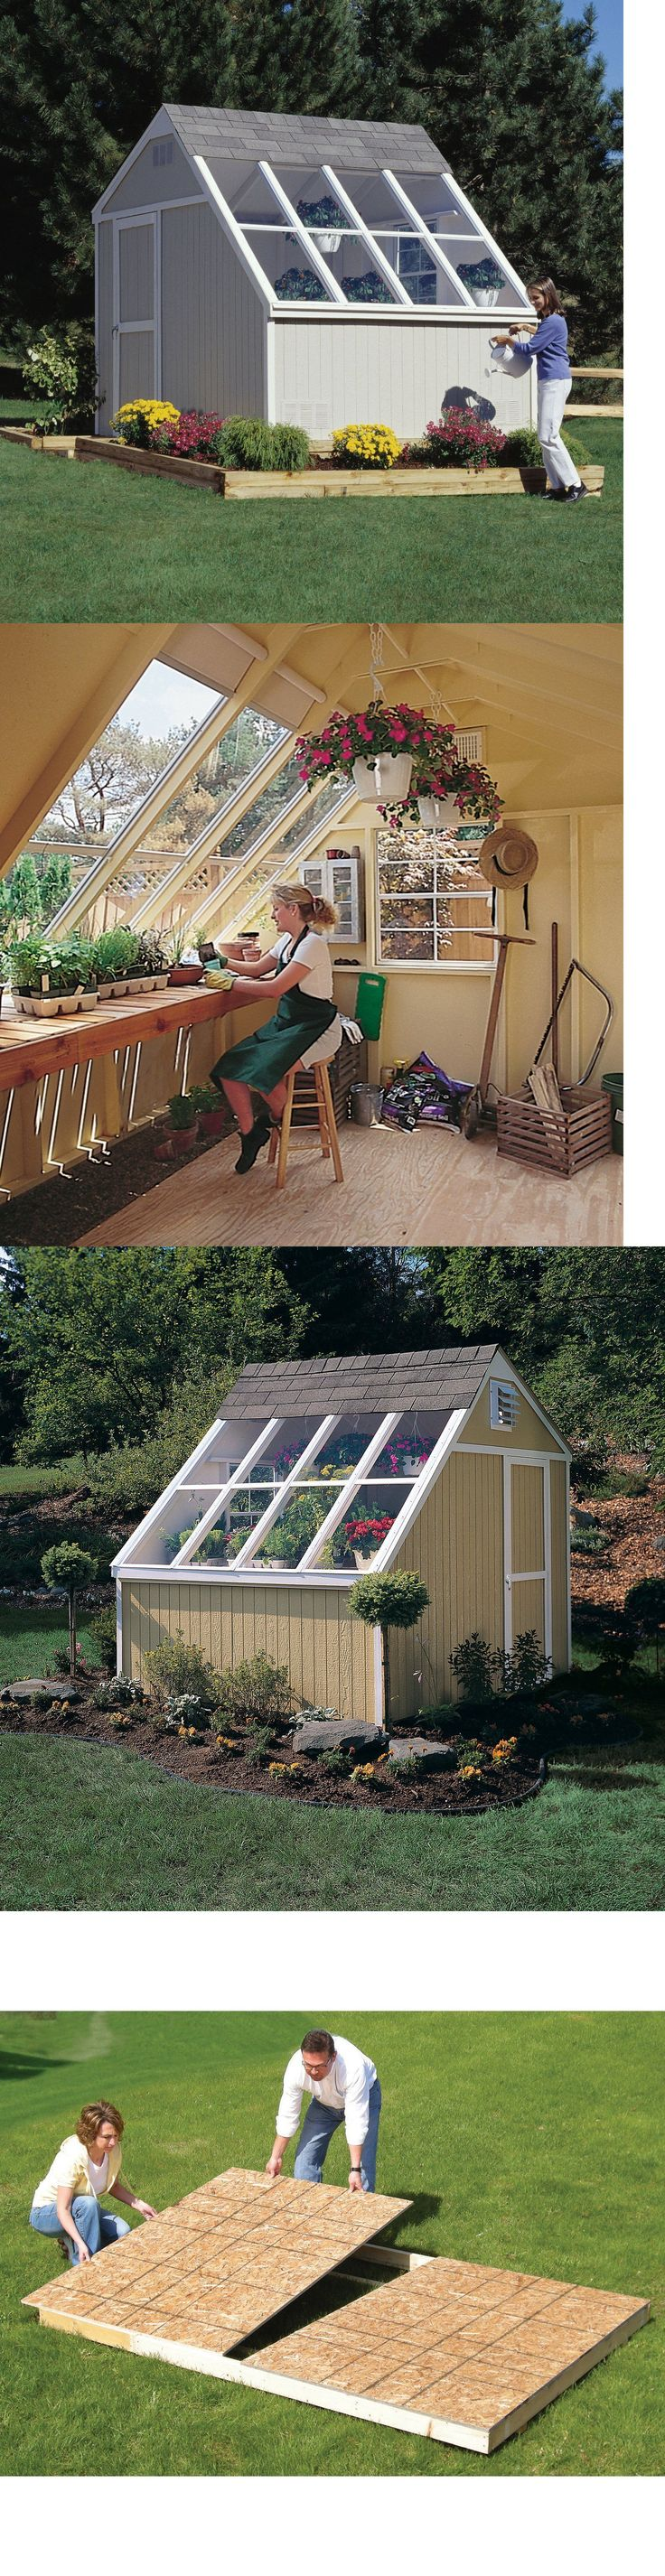 Garden and Storage Sheds 139956: Solariums Greenhouses For Sale Tool Potting Storage Shed Solar Flower Gardening -> BUY IT NOW ONLY: $3294.99 on eBay!